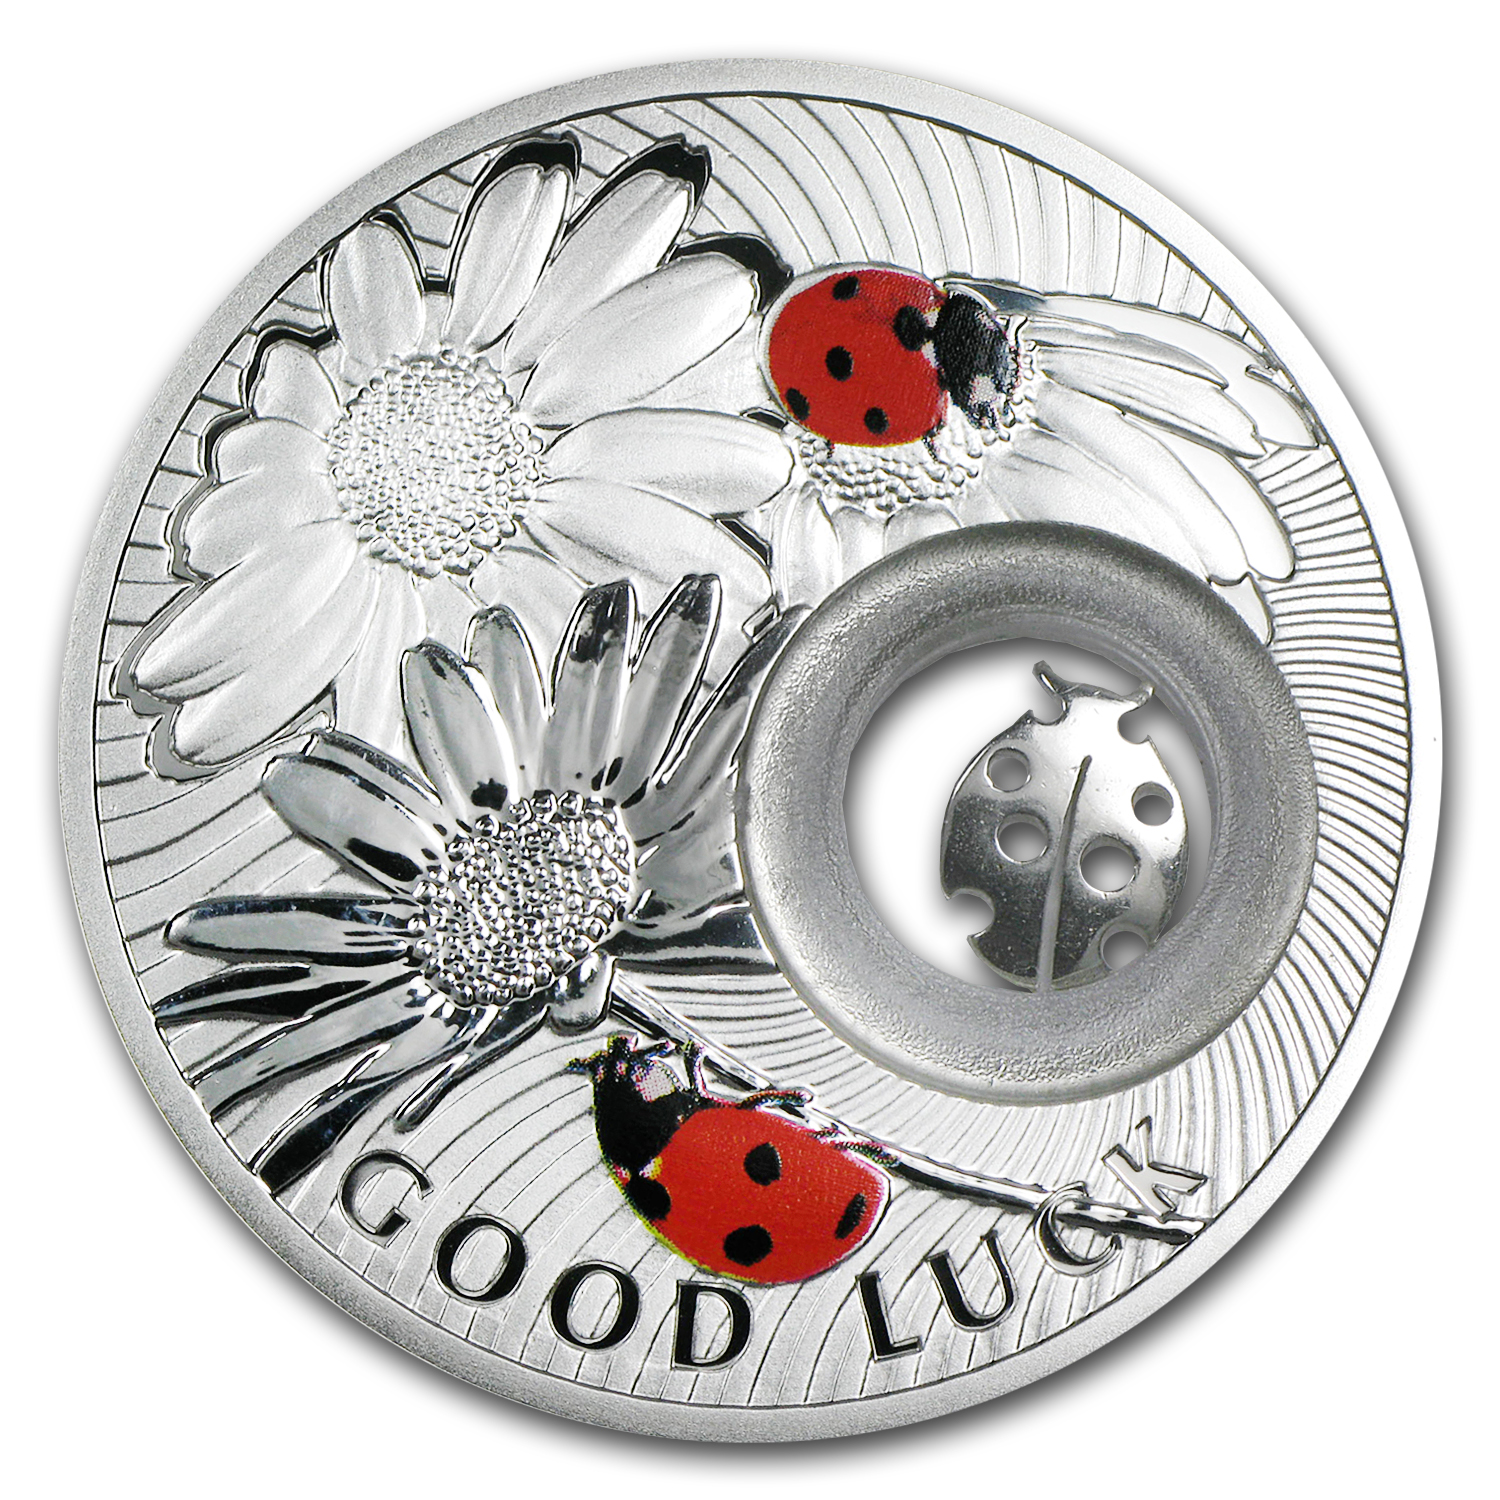 2011 Niue Proof Silver $1 Lucky Coins Series Ladybird